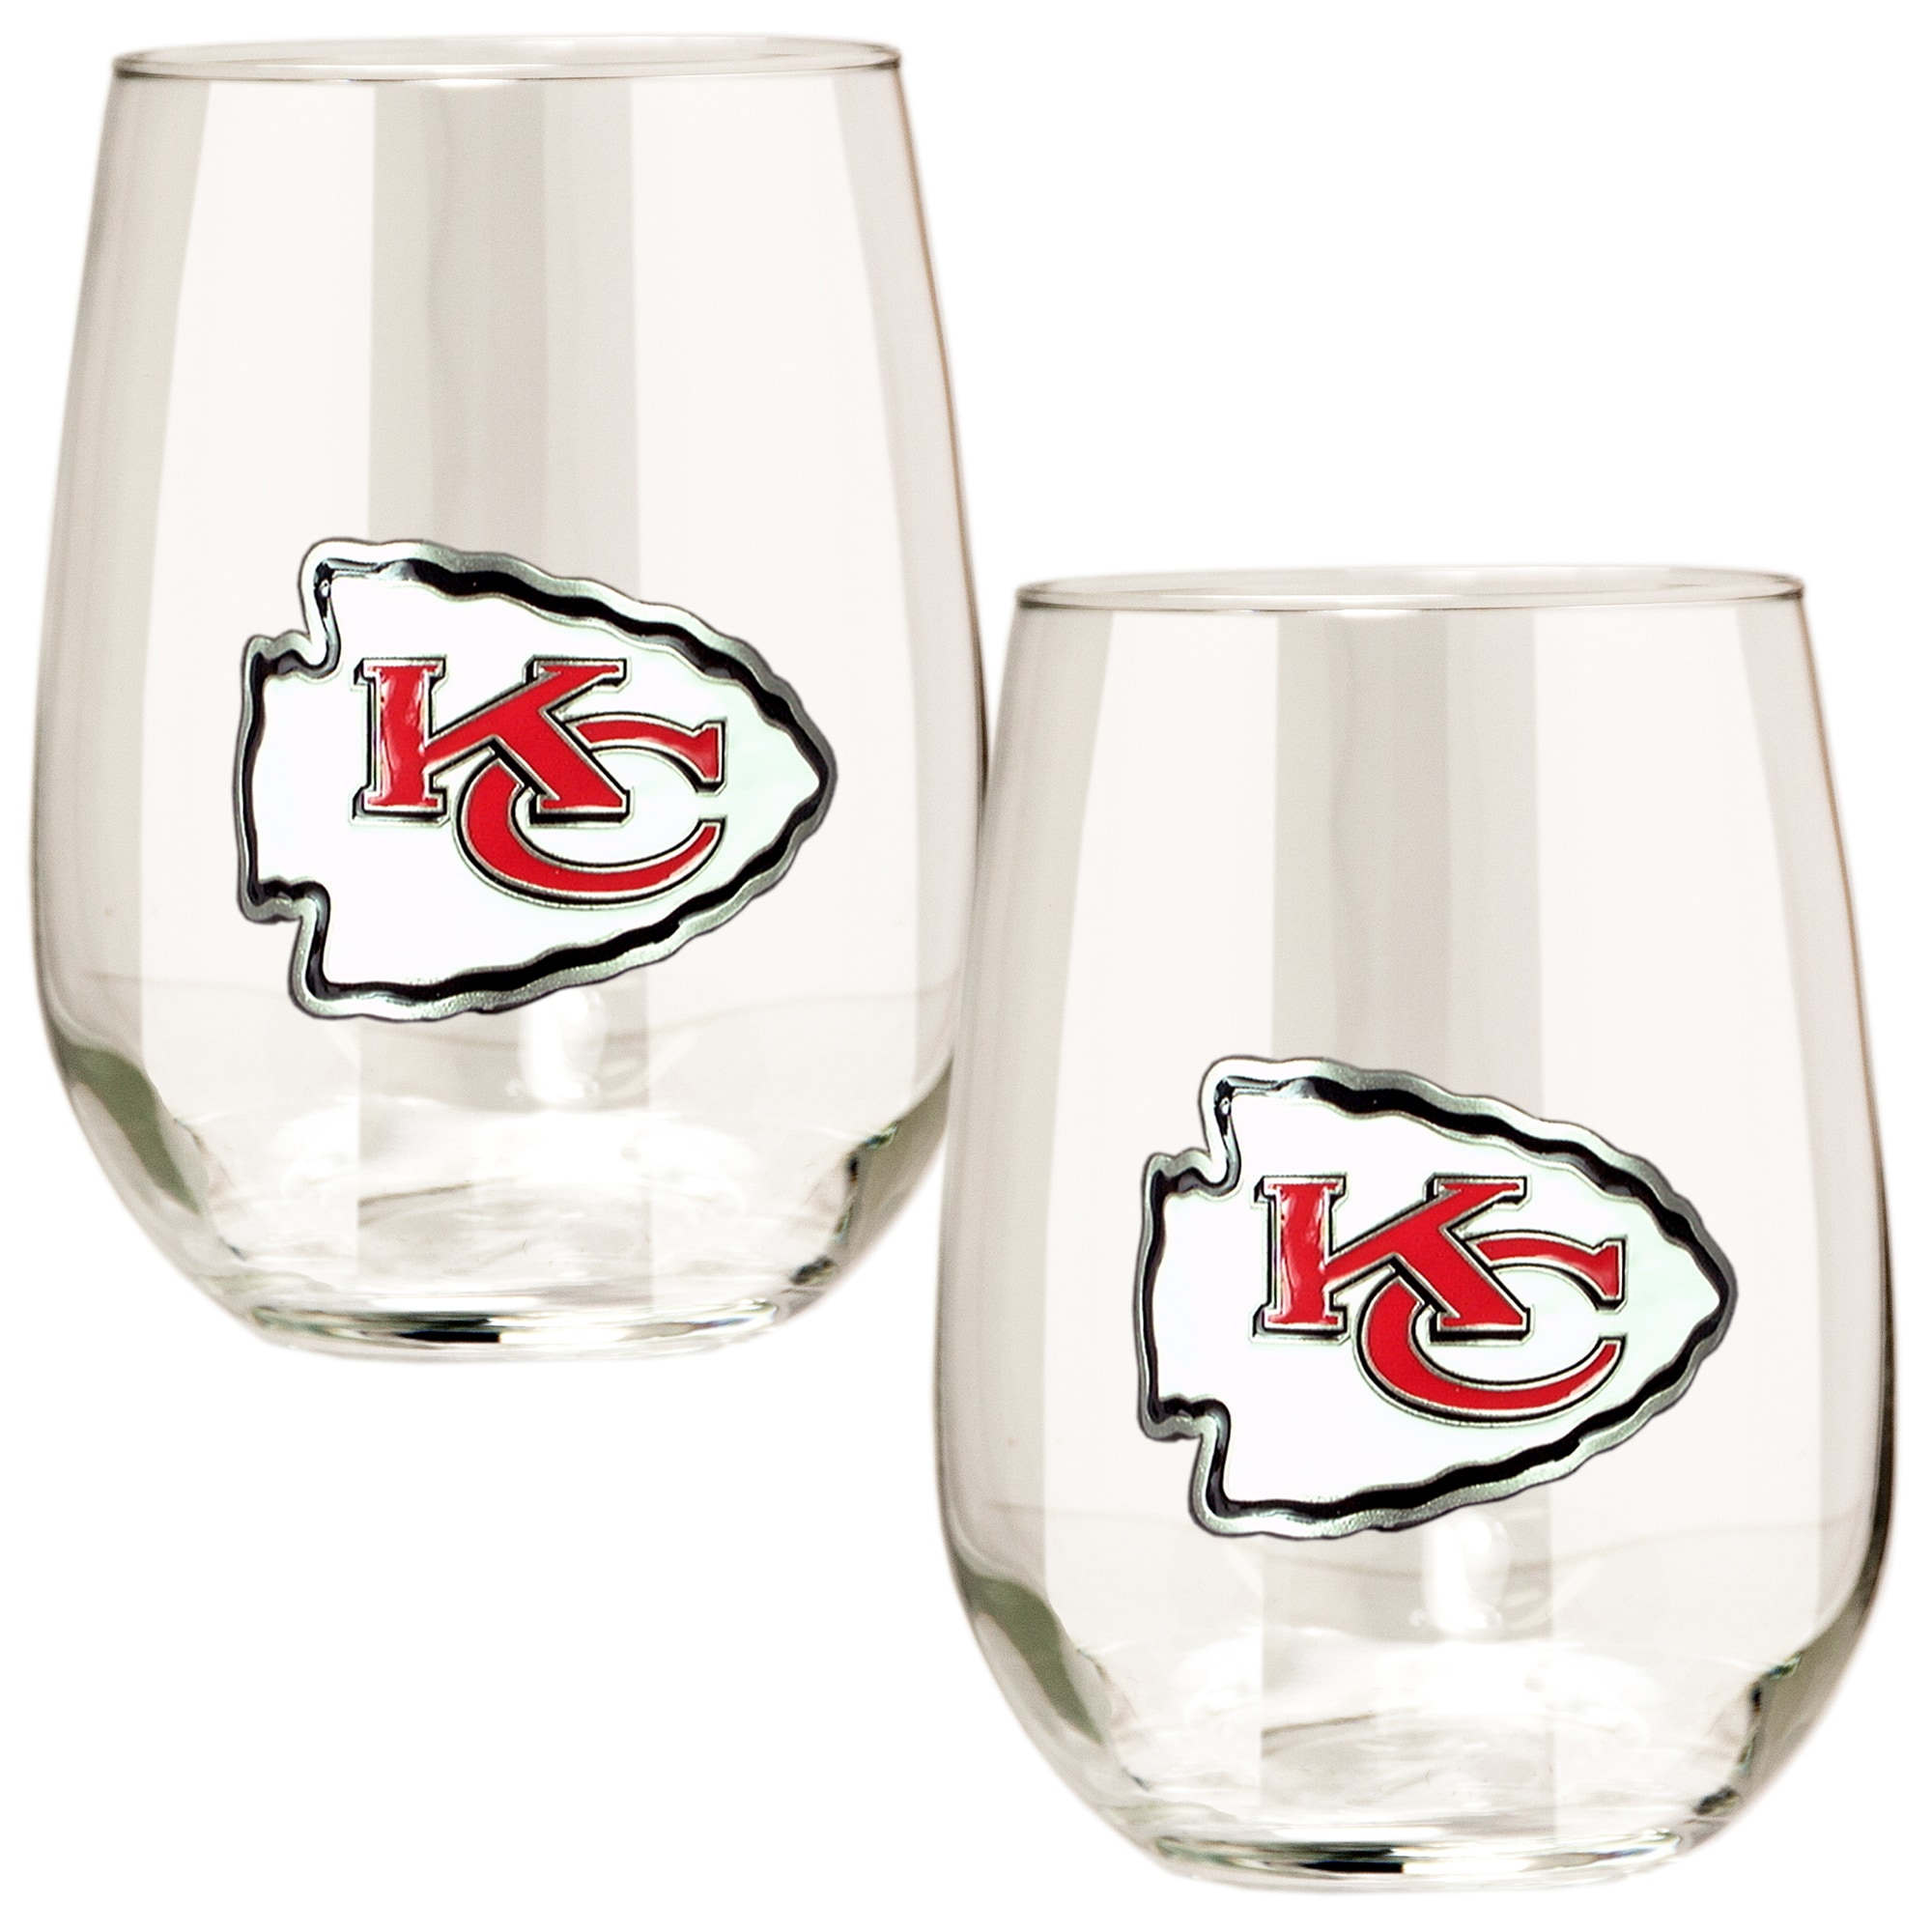 Kansas City Chiefs 15oz. Stemless Wine Glass Set